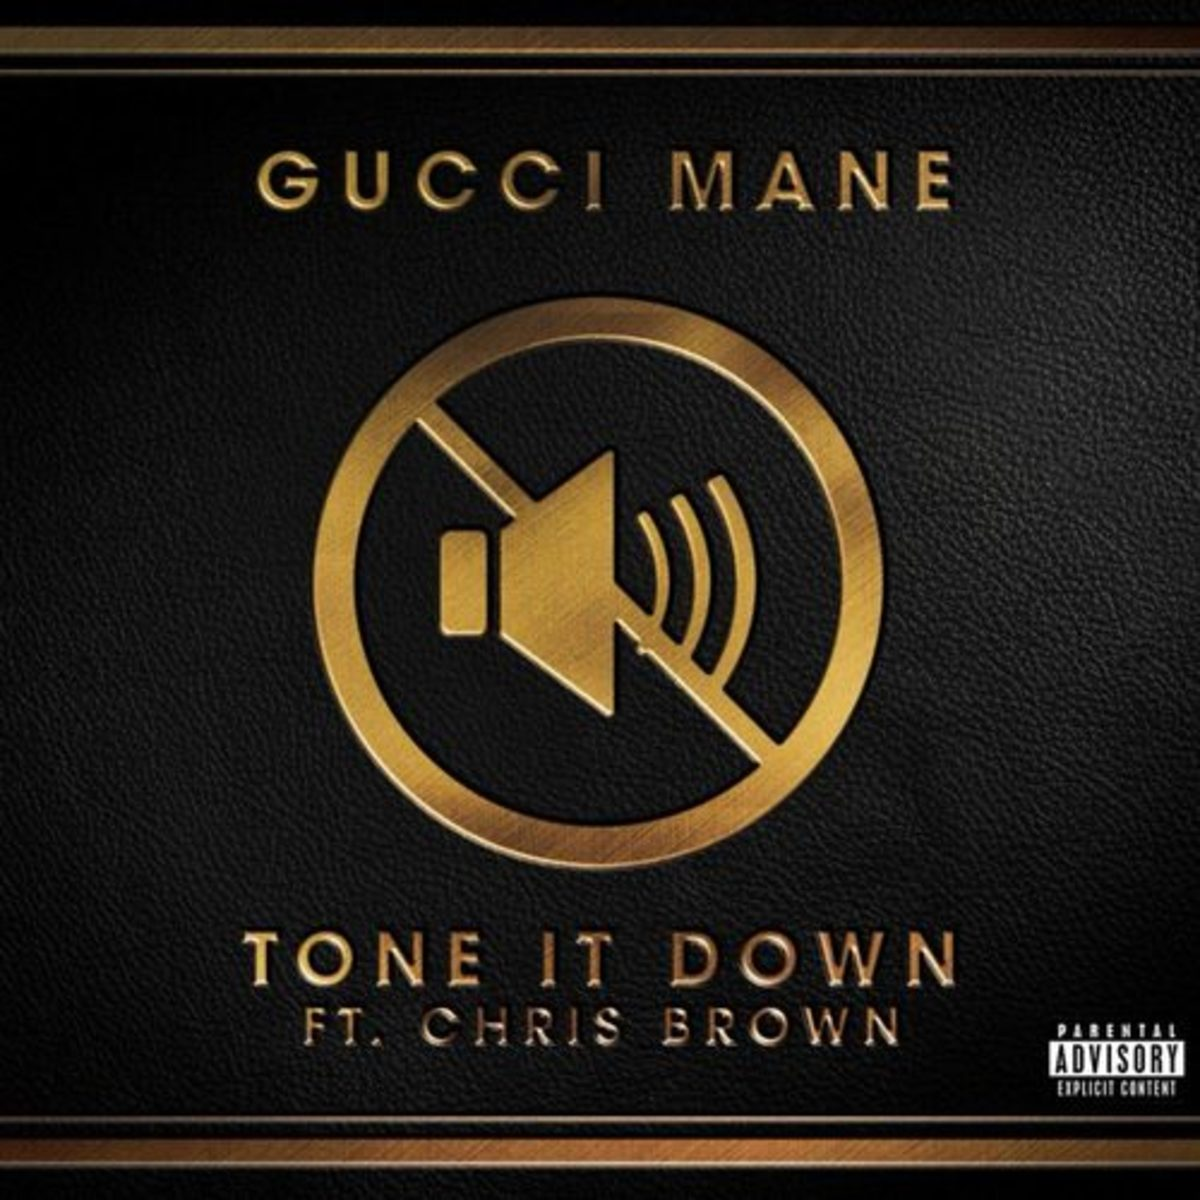 gucci-mane-tone-it-down.jpeg